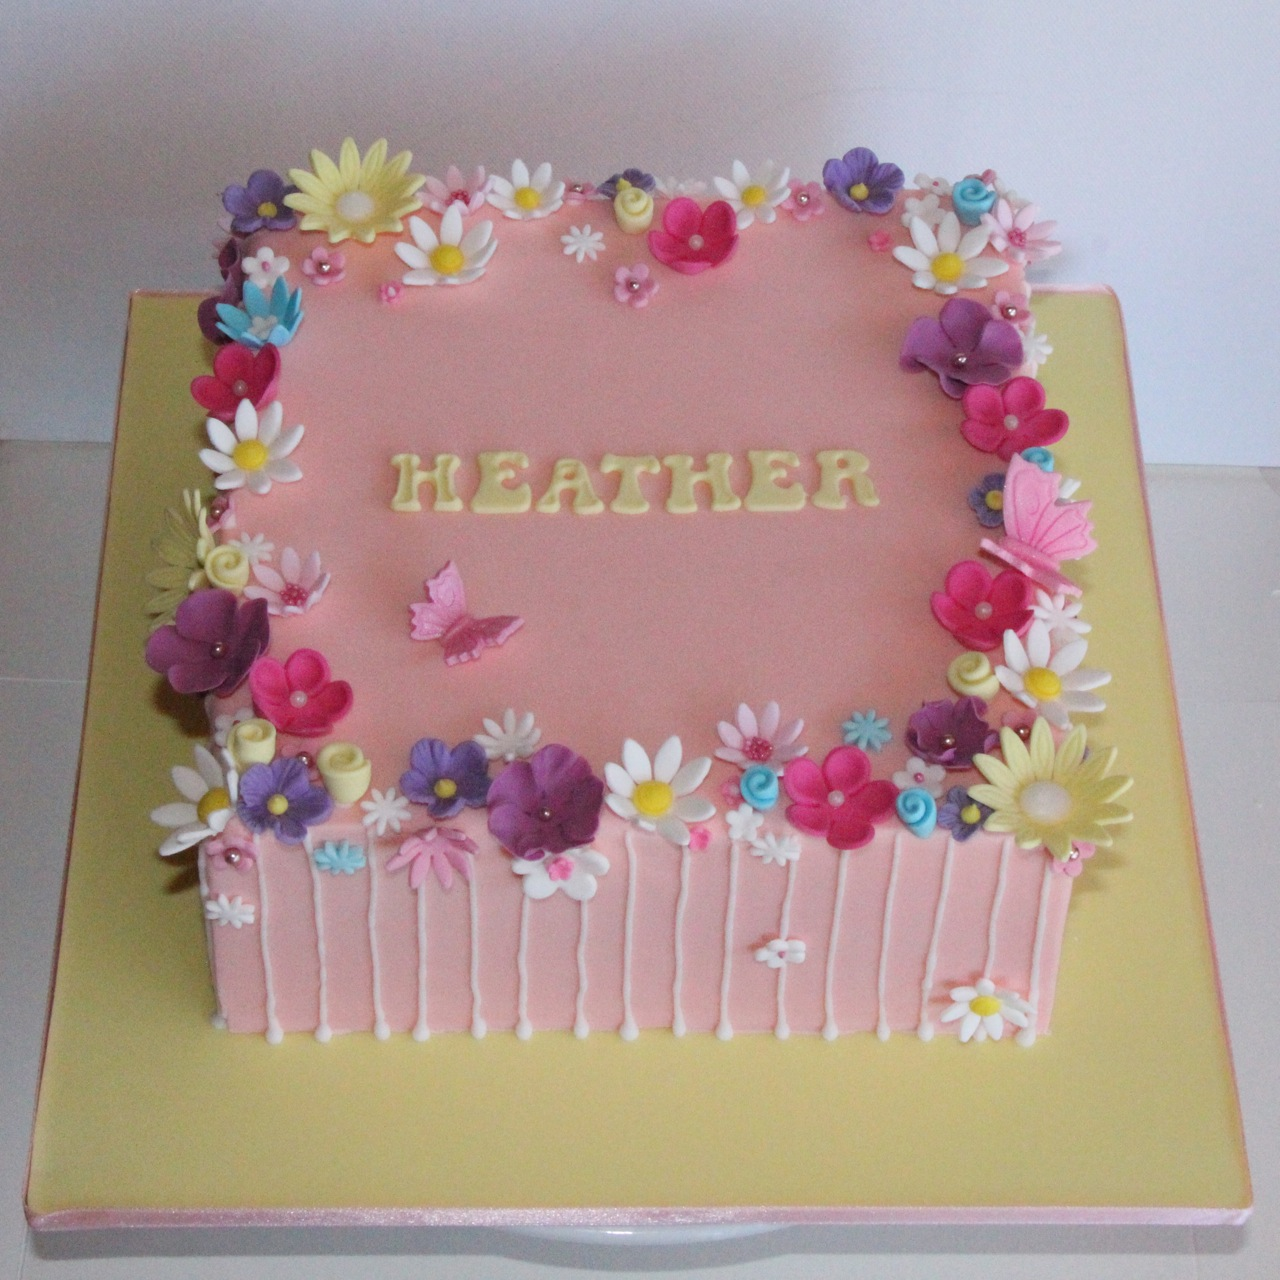 Cake Design Ideas With Flowers : Coco Jo Cake Design: Flower garden cake